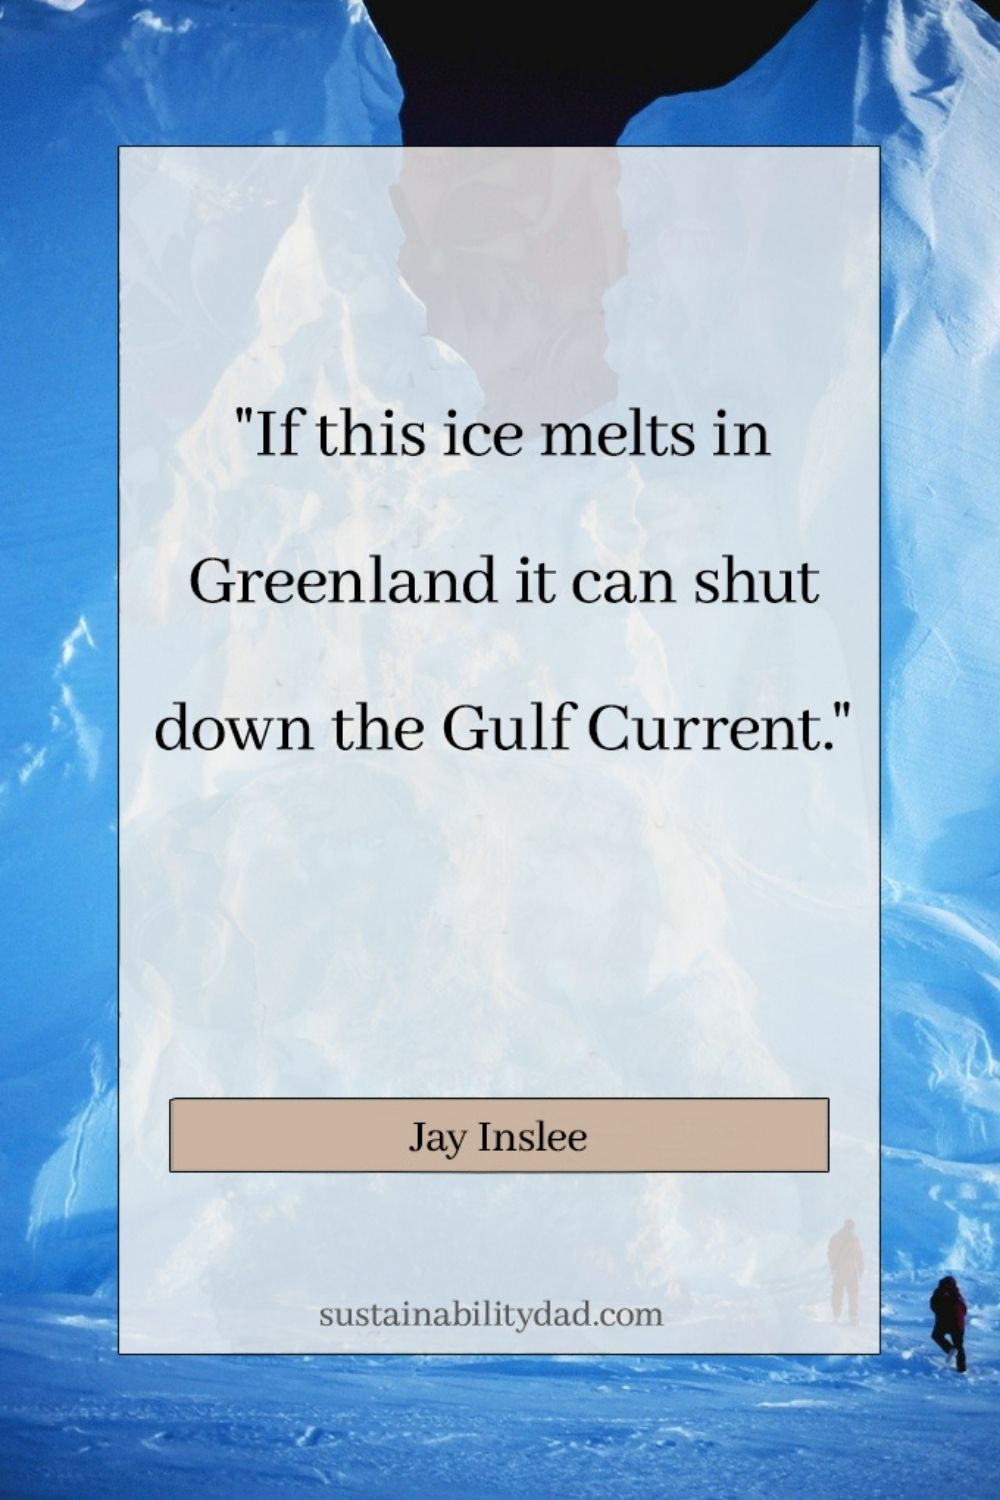 sustainability quotes Greenland ice